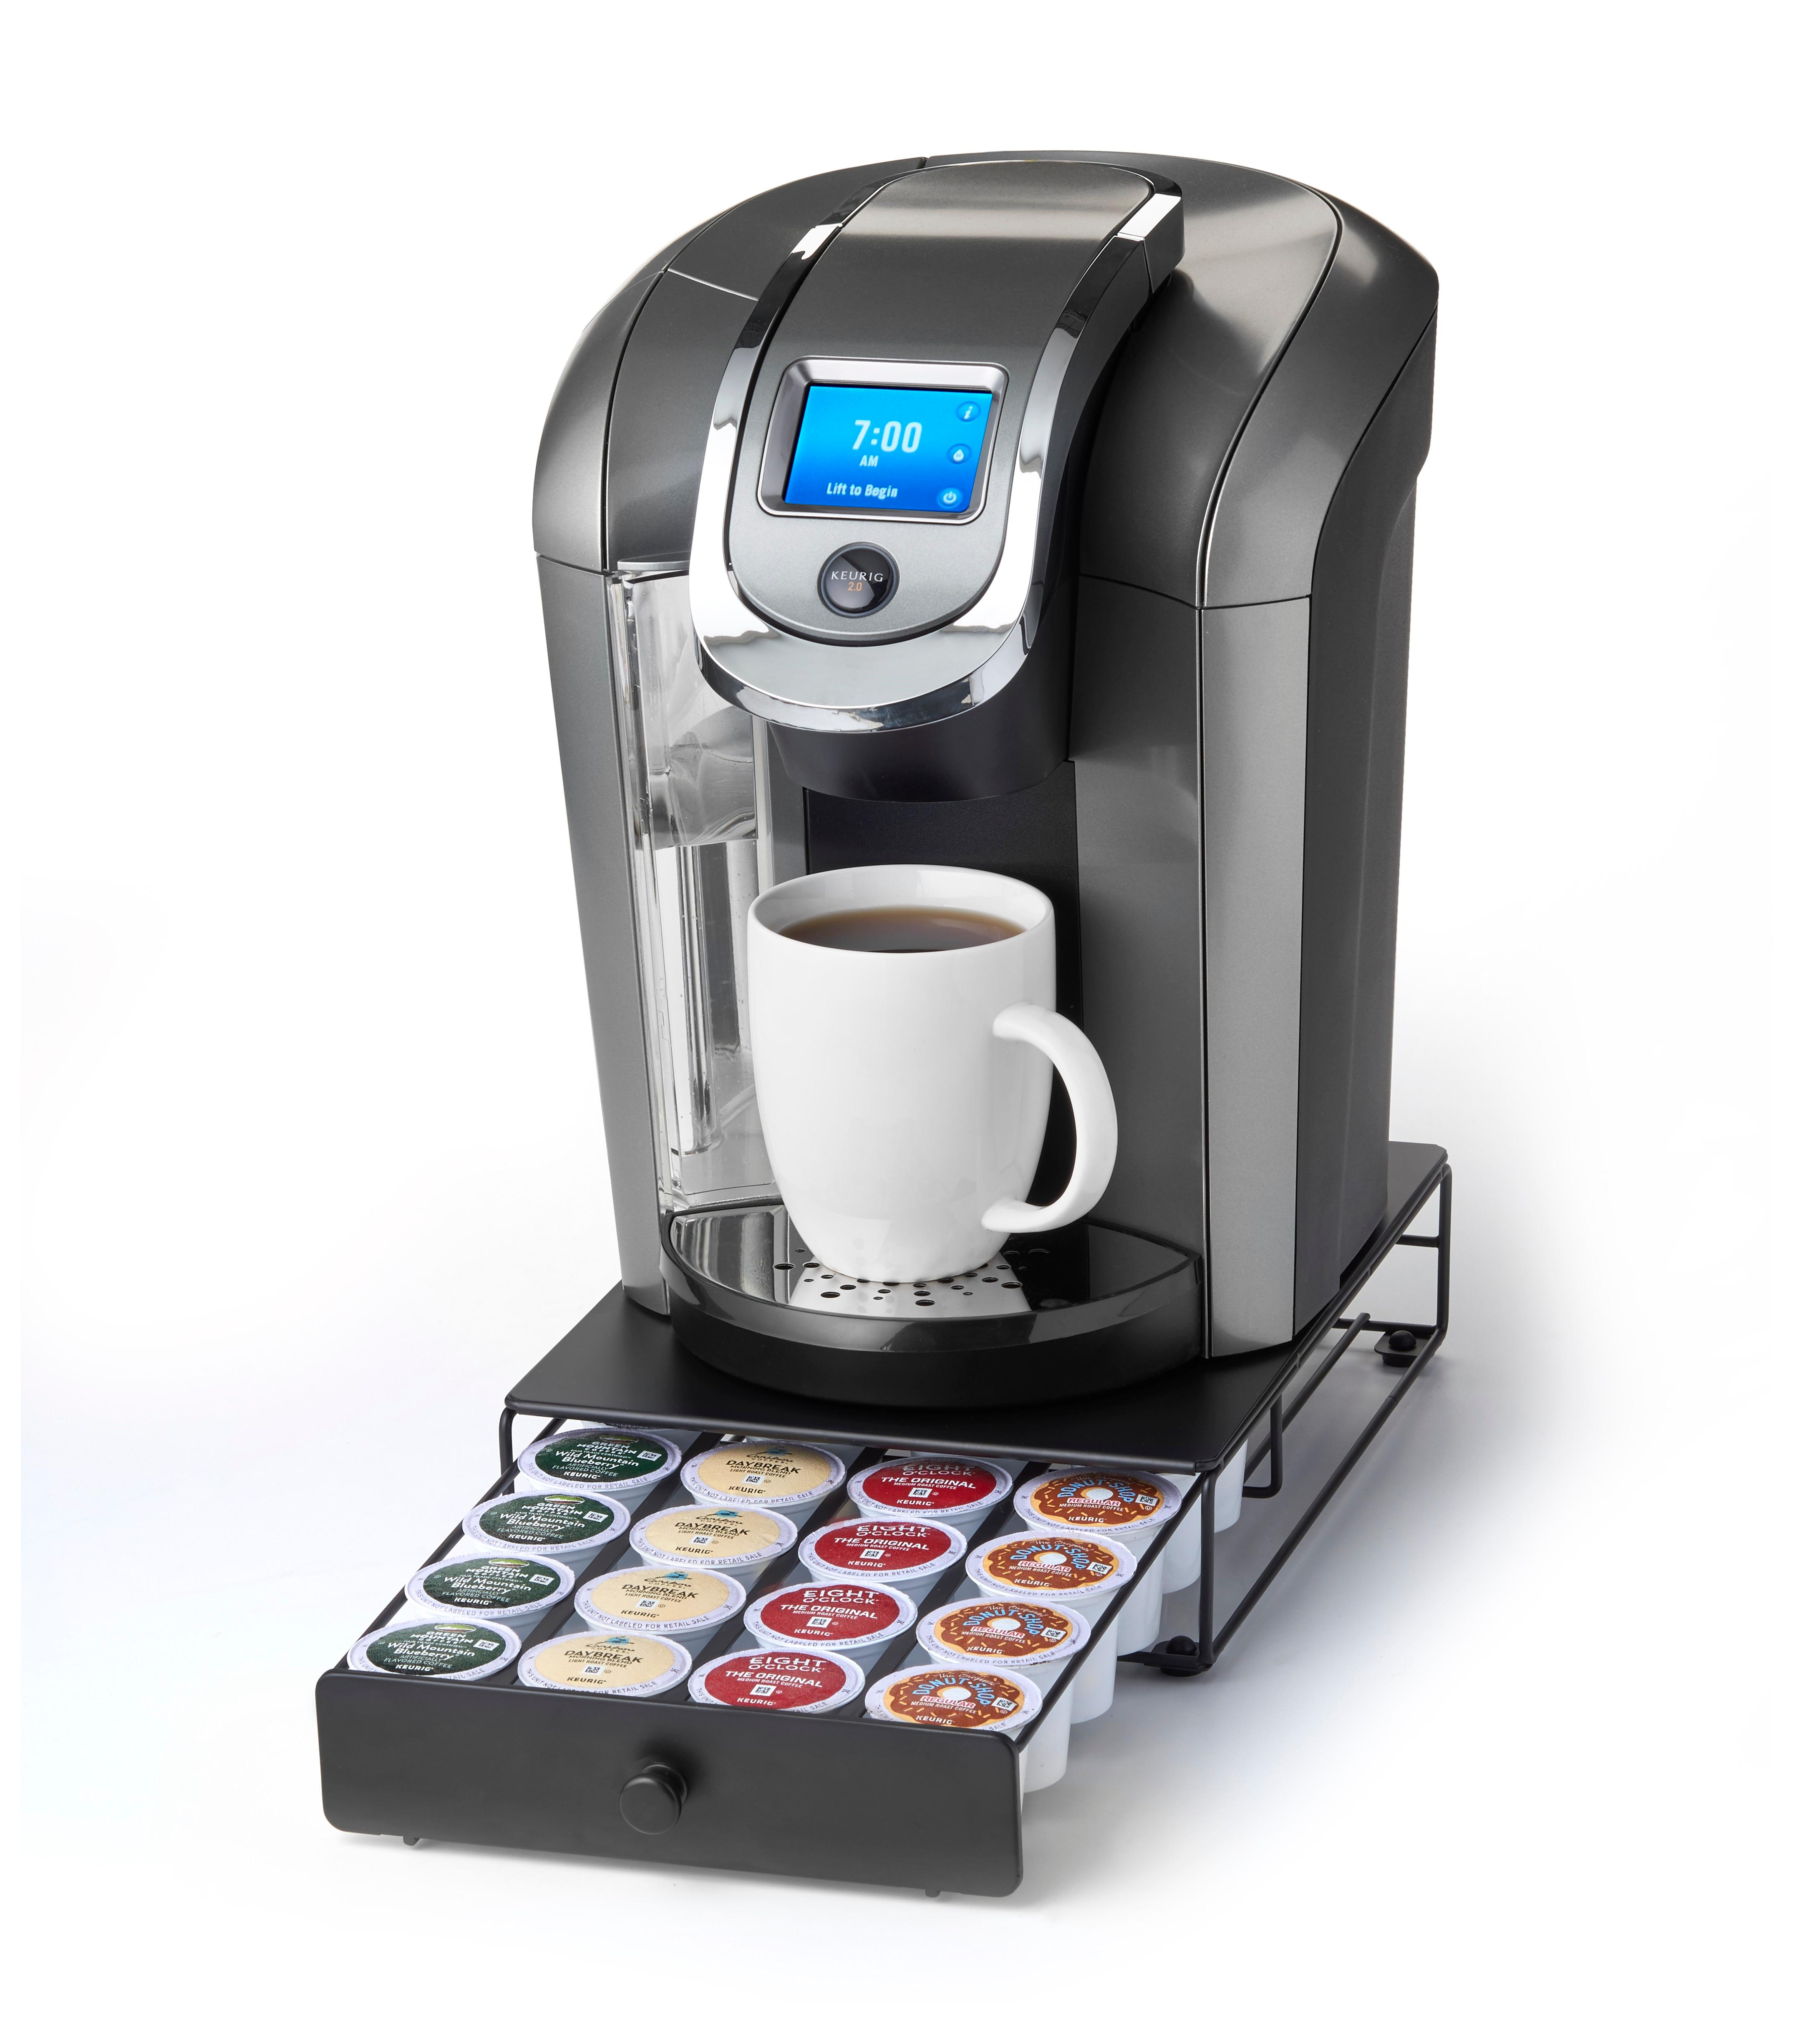 Amazon.com: Keurig Brewed Under the Brewer Mini K-Cup Drawer: Coffee Brewing Machine Cups ...